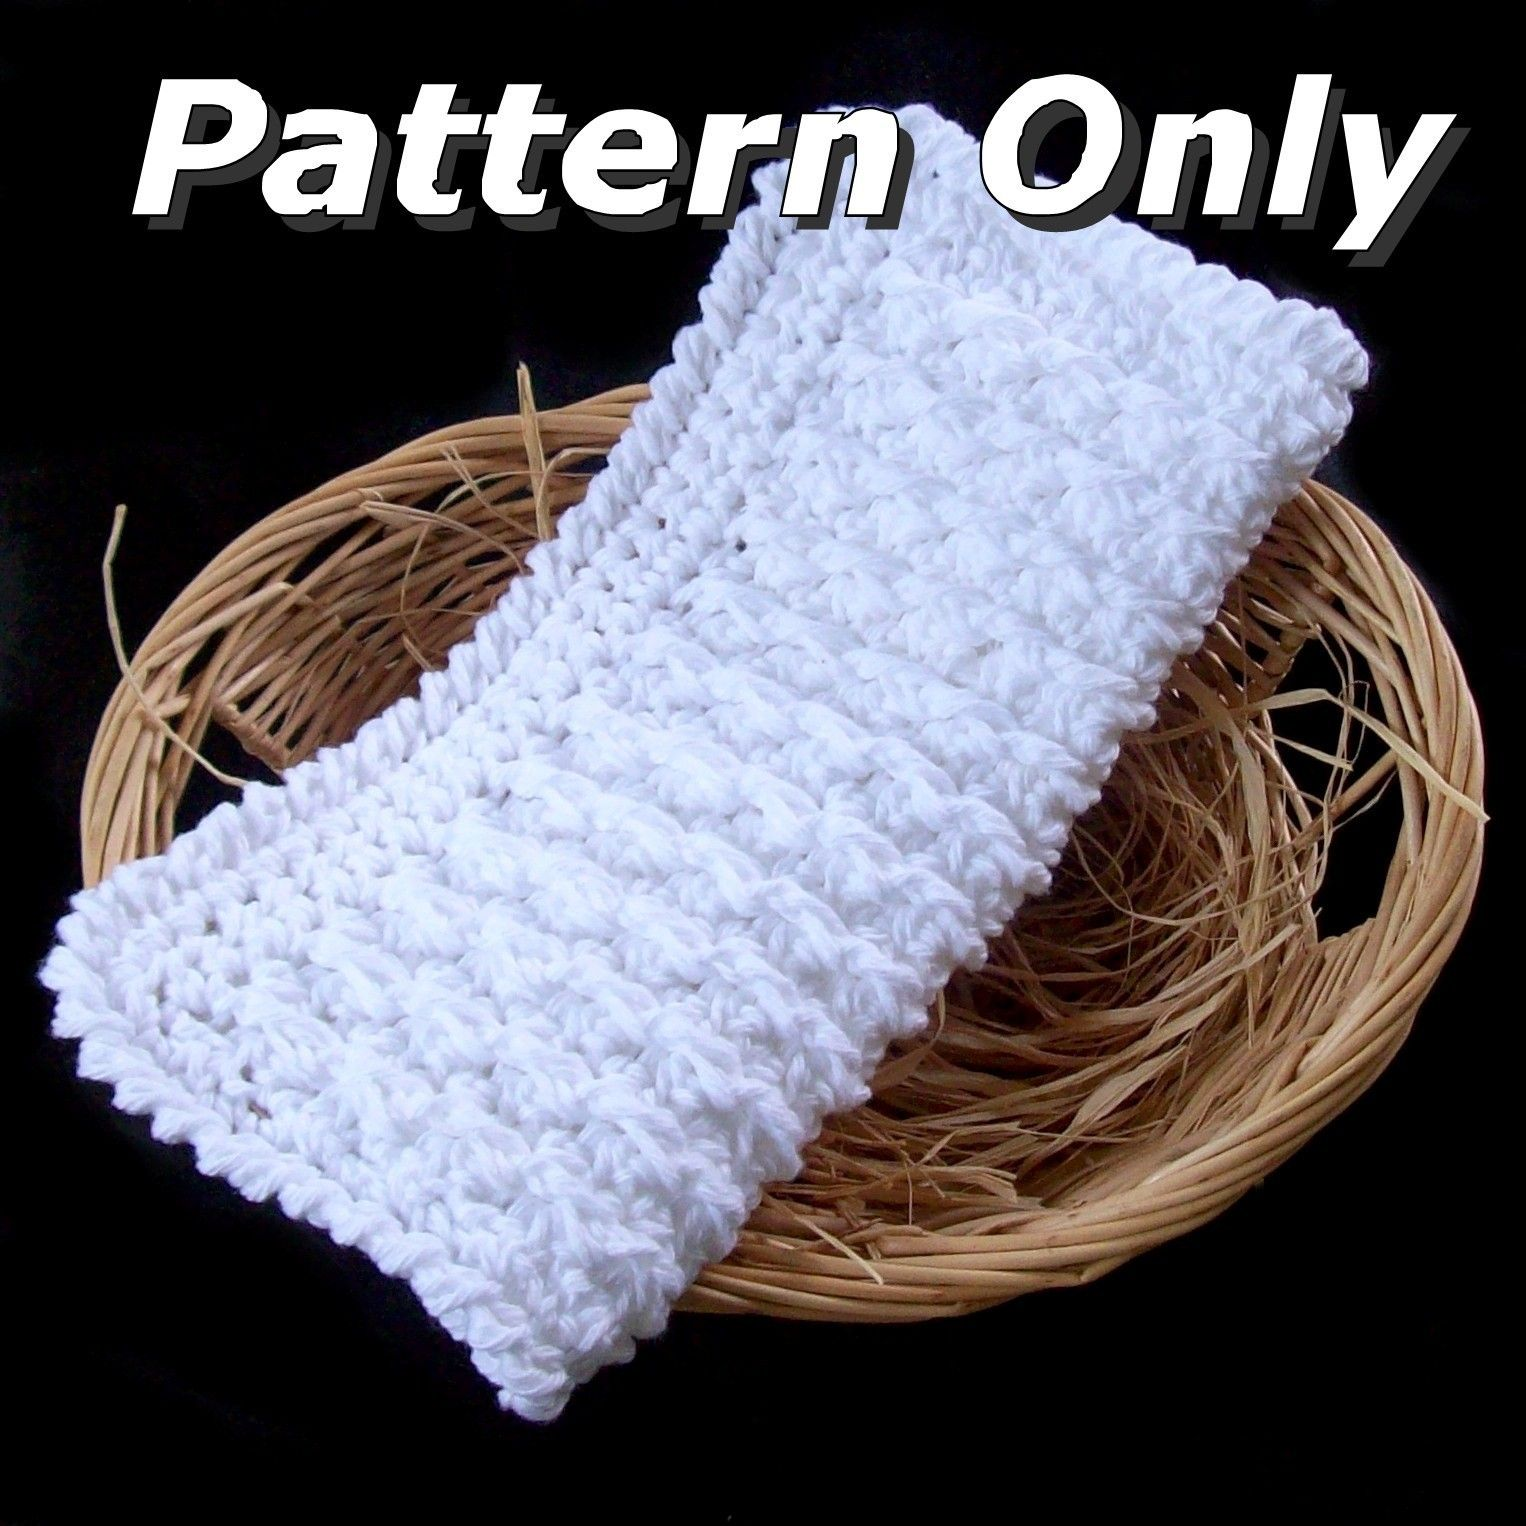 Free crochet wedding gift patterns free crochet pattern free crochet wedding gift patterns free crochet pattern washcloth crochet patterns bankloansurffo Image collections